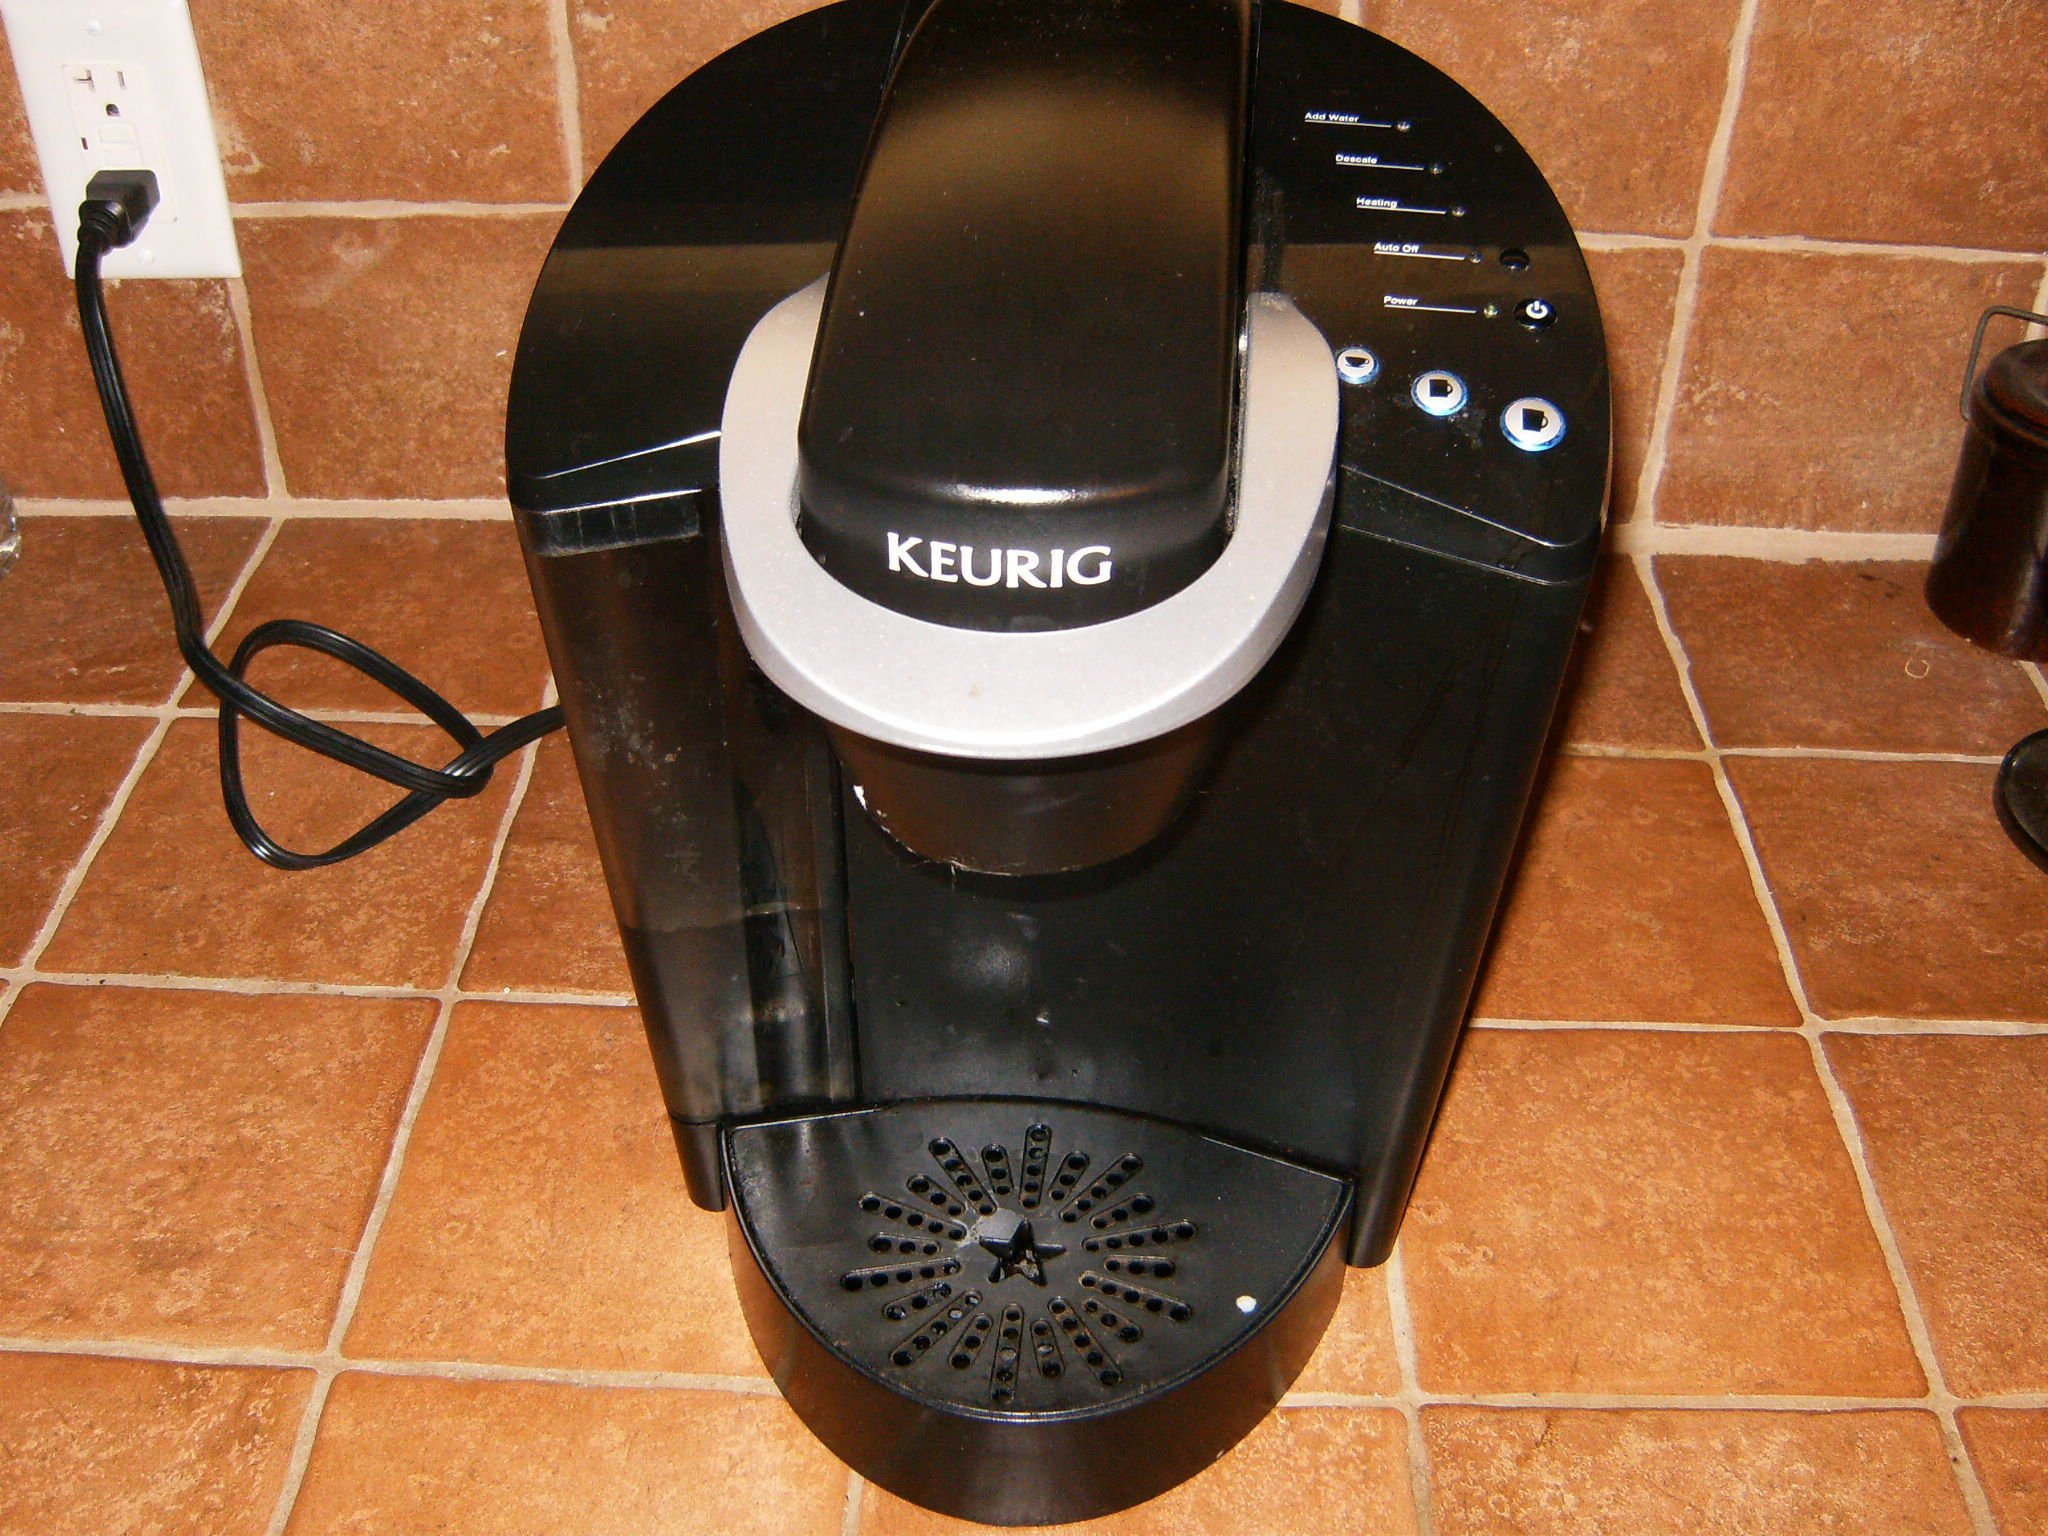 How To Open And Clean Keurig Coffee Maker Ifixit Repair